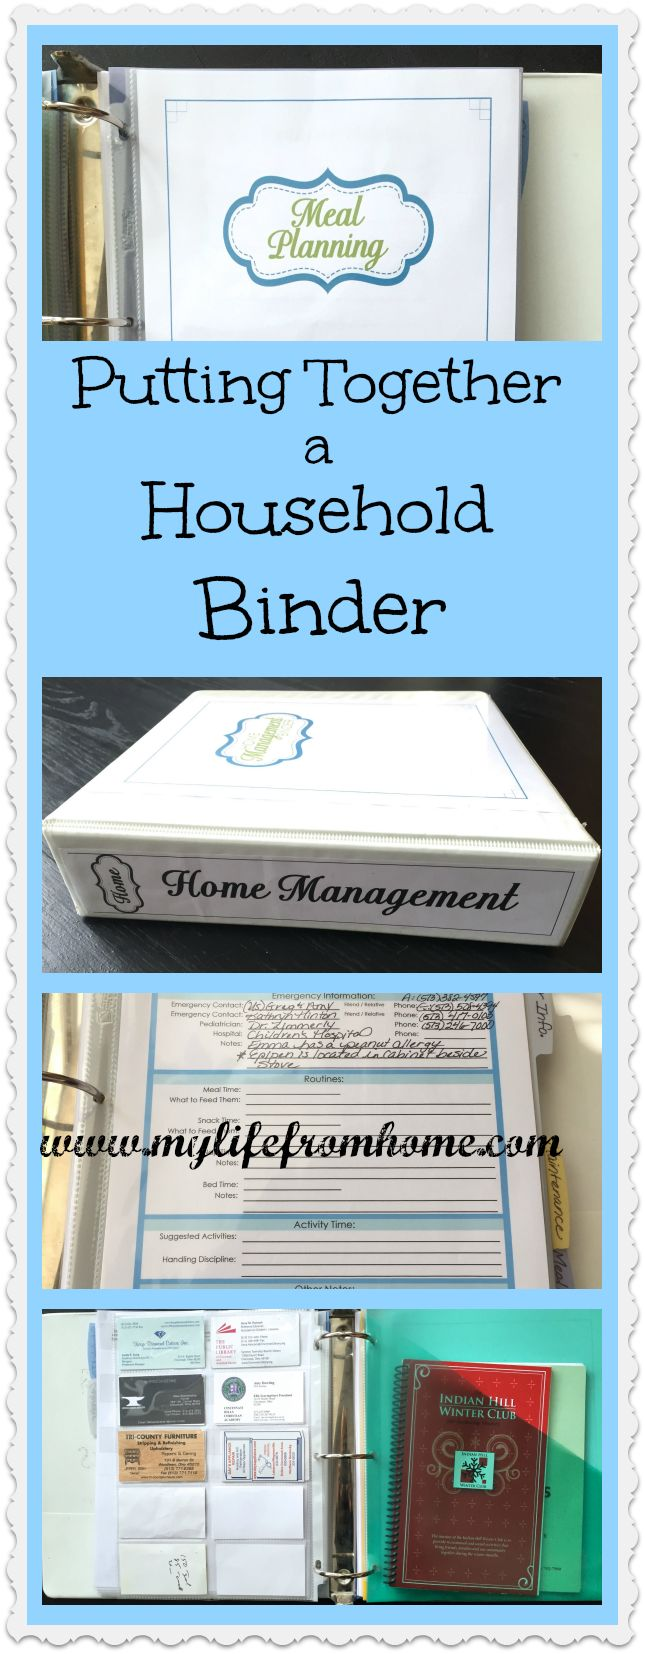 Need help organizing your household? All you need to know about putting together a household binder! | www.mylifefromhome.com